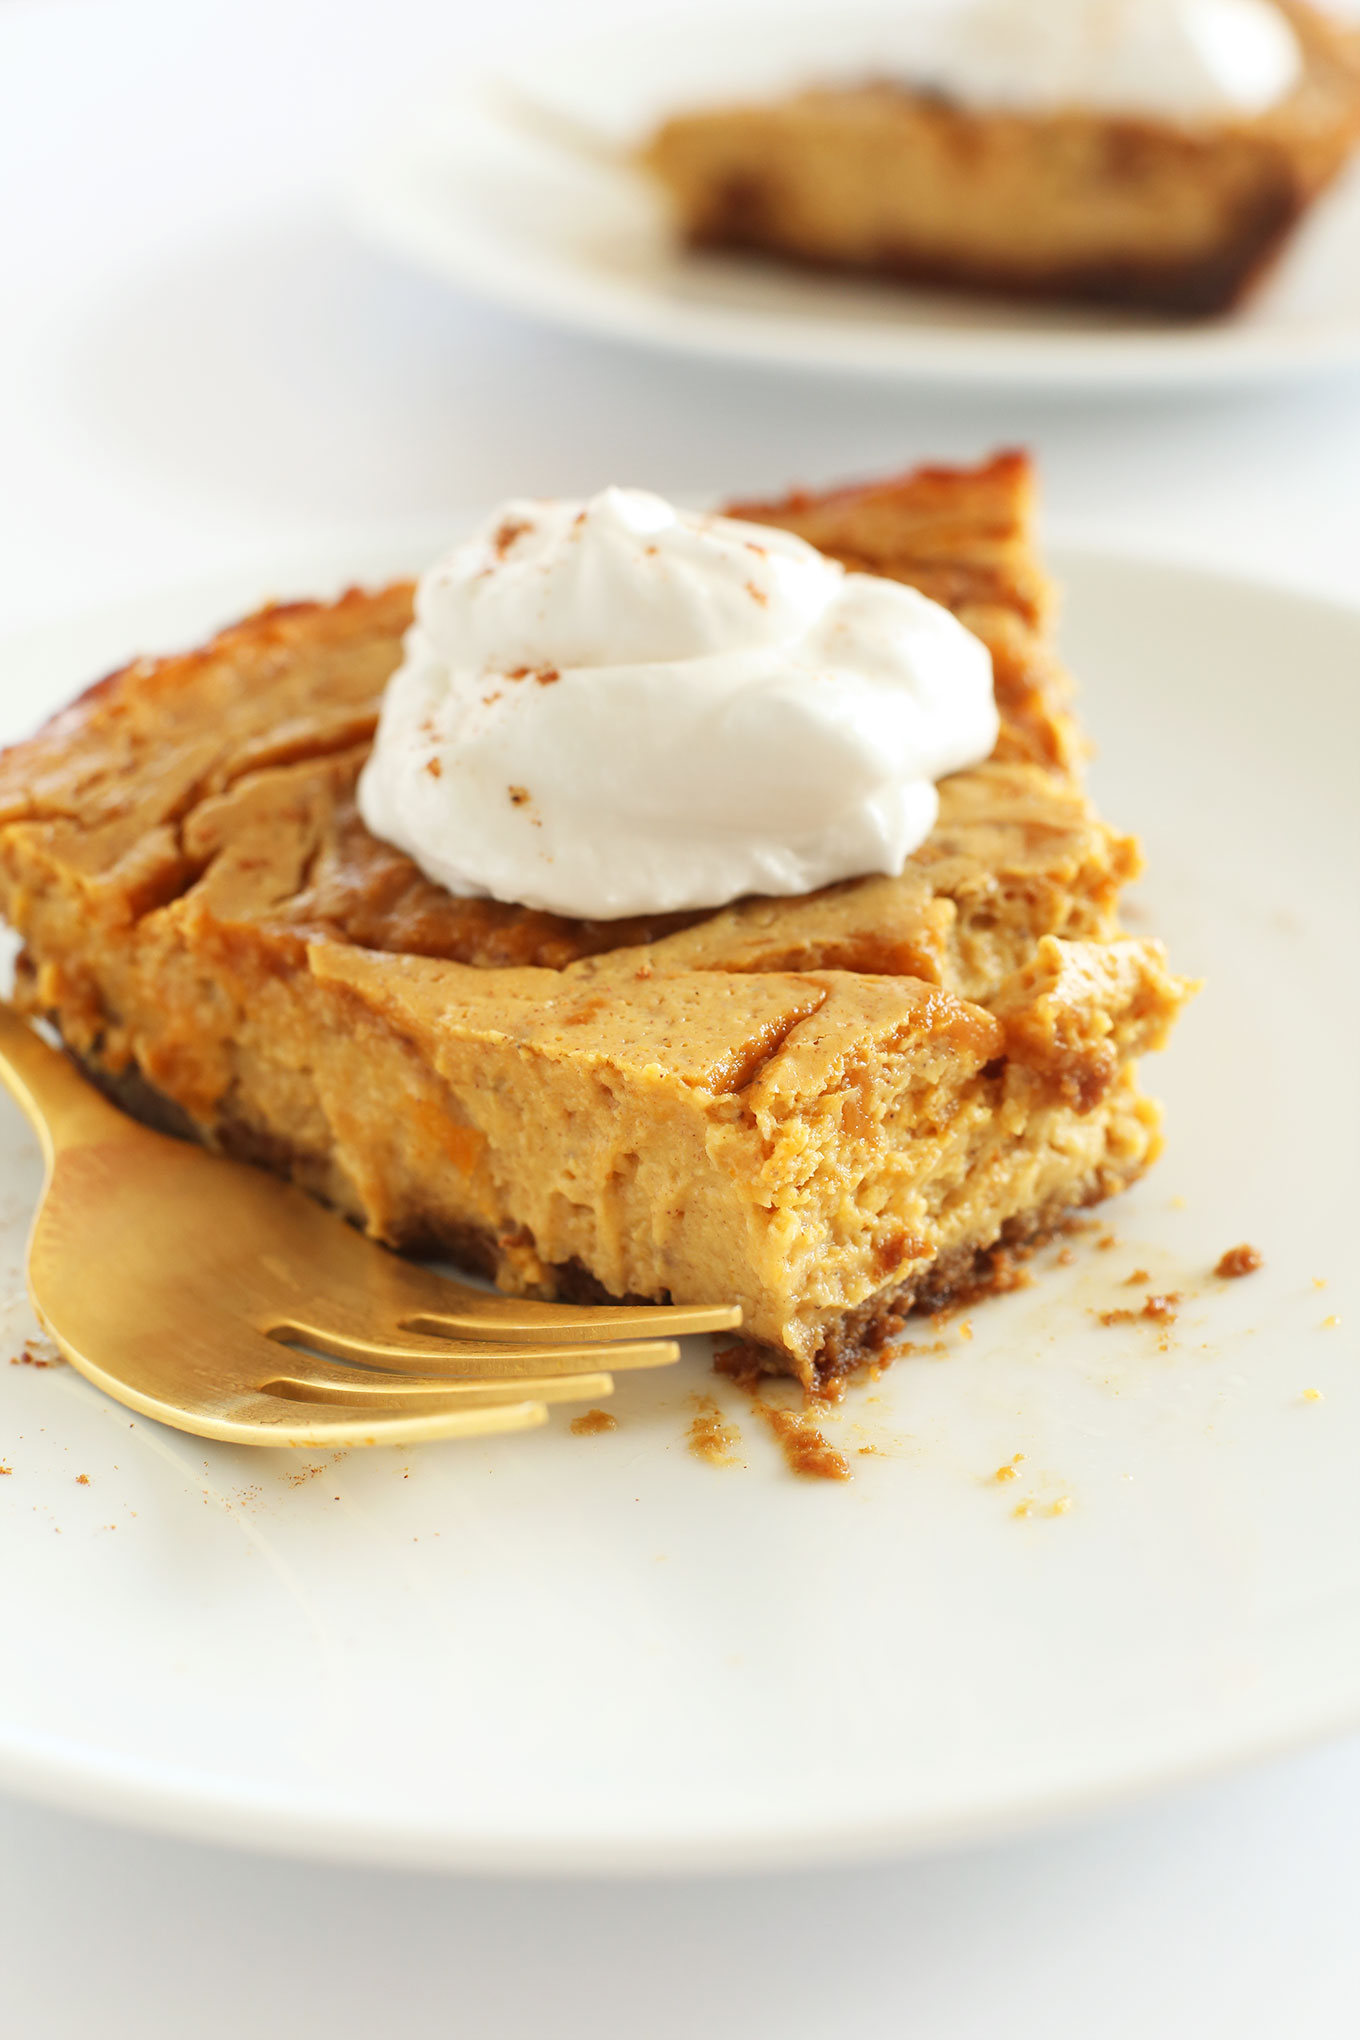 SERIOUSLY amazing Vegan Pumpkin Swirl Cheesecake with Graham Cracker Crust! #vegan #minimalistbaker